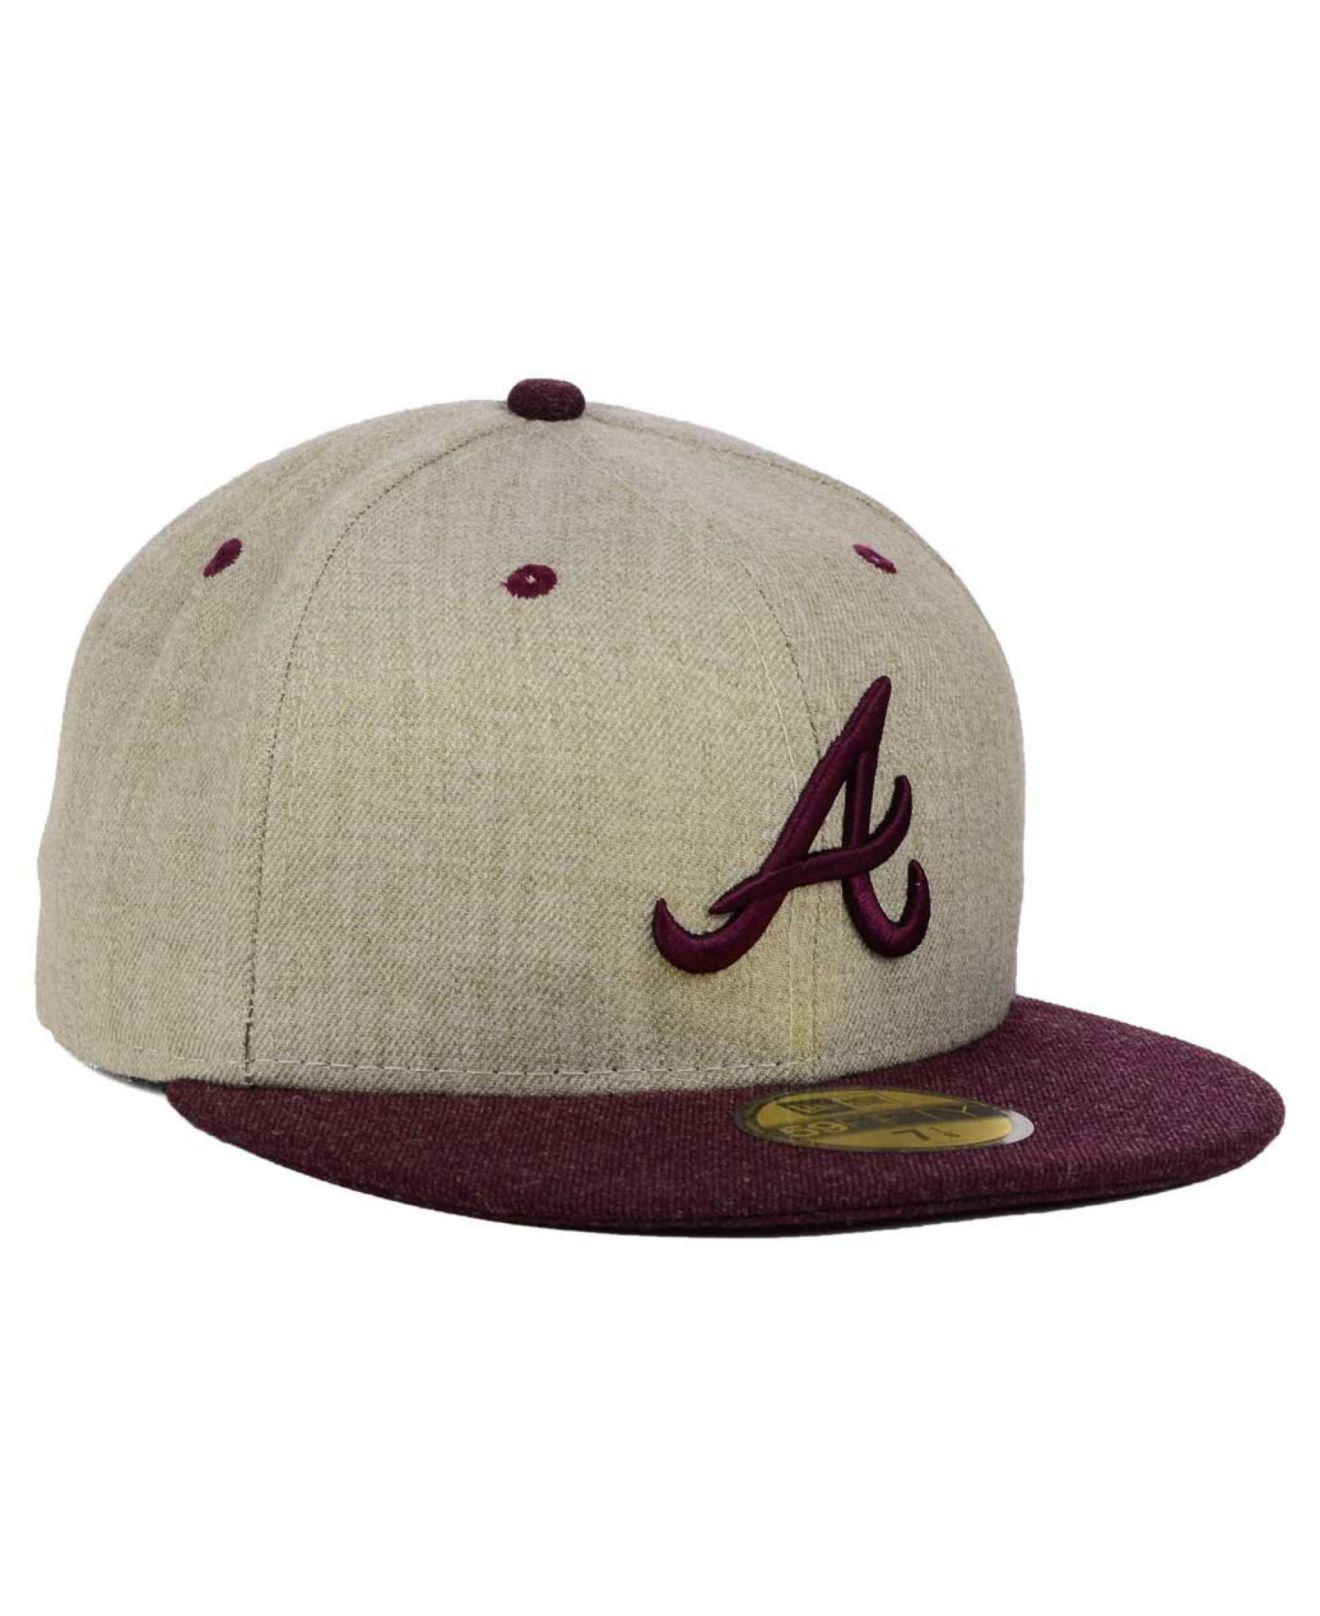 new product fbdd3 d95b5 low cost lyst ktz atlanta braves heather mashup 59fifty cap in natural for  men e6fcc b7e63